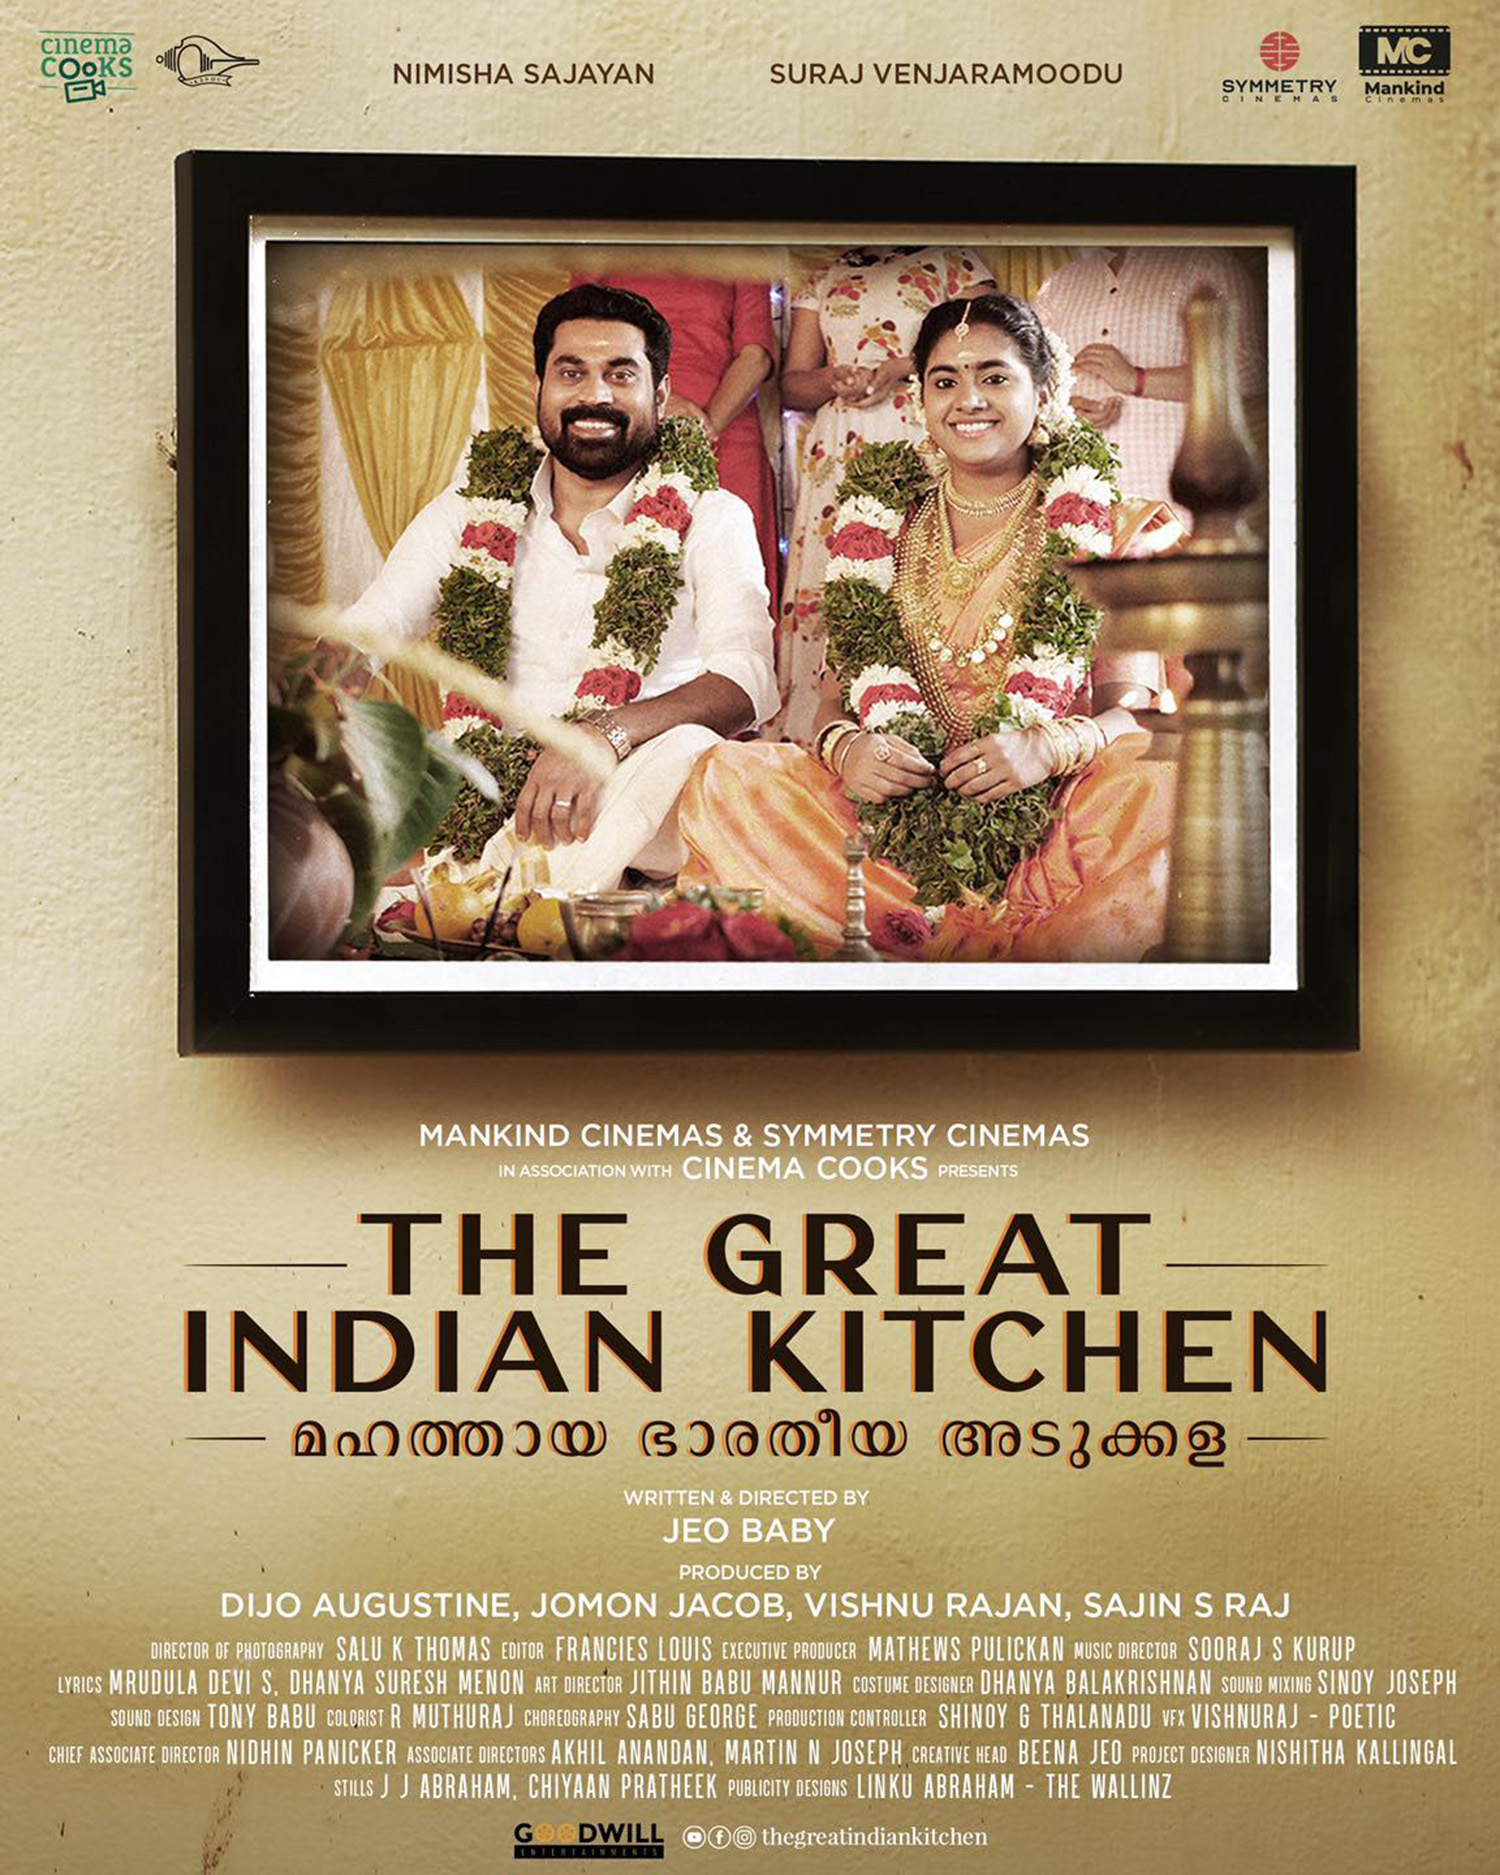 The Great Indian Kitchen,The Great Indian Kitchen movie,The Great Indian Kitchen first look poster,suraj venjaramoodu,nimisha sajayan,suraj venjaramoodu nimisha sajayan new film,malayalam cinema,upcoming suraj venjaramoodu films